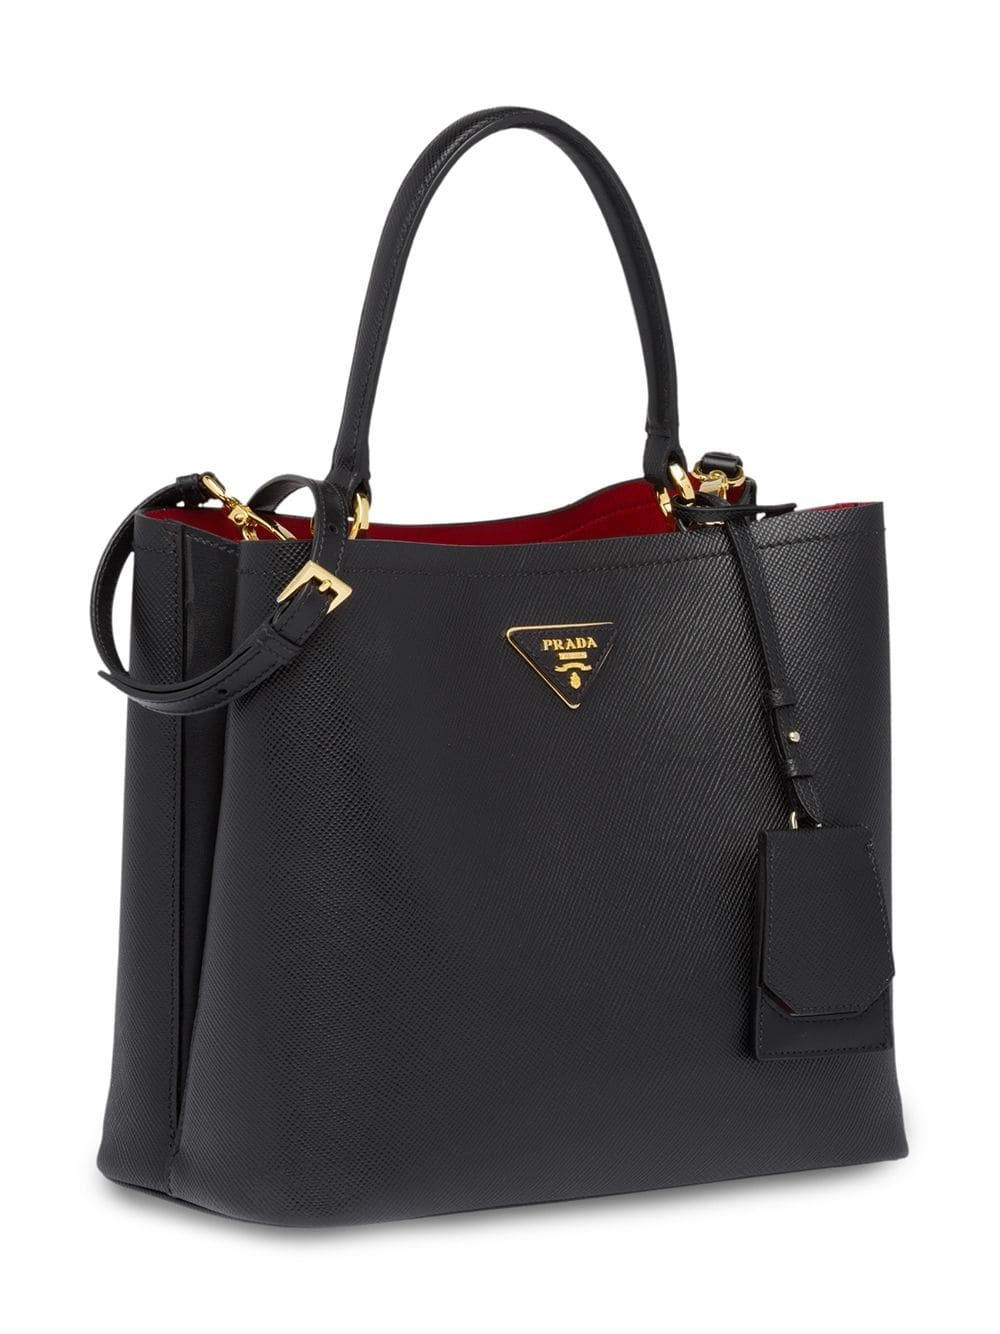 577236d56aa6 prada MAXI TOTE BAG available on montiboutique.com - 28743